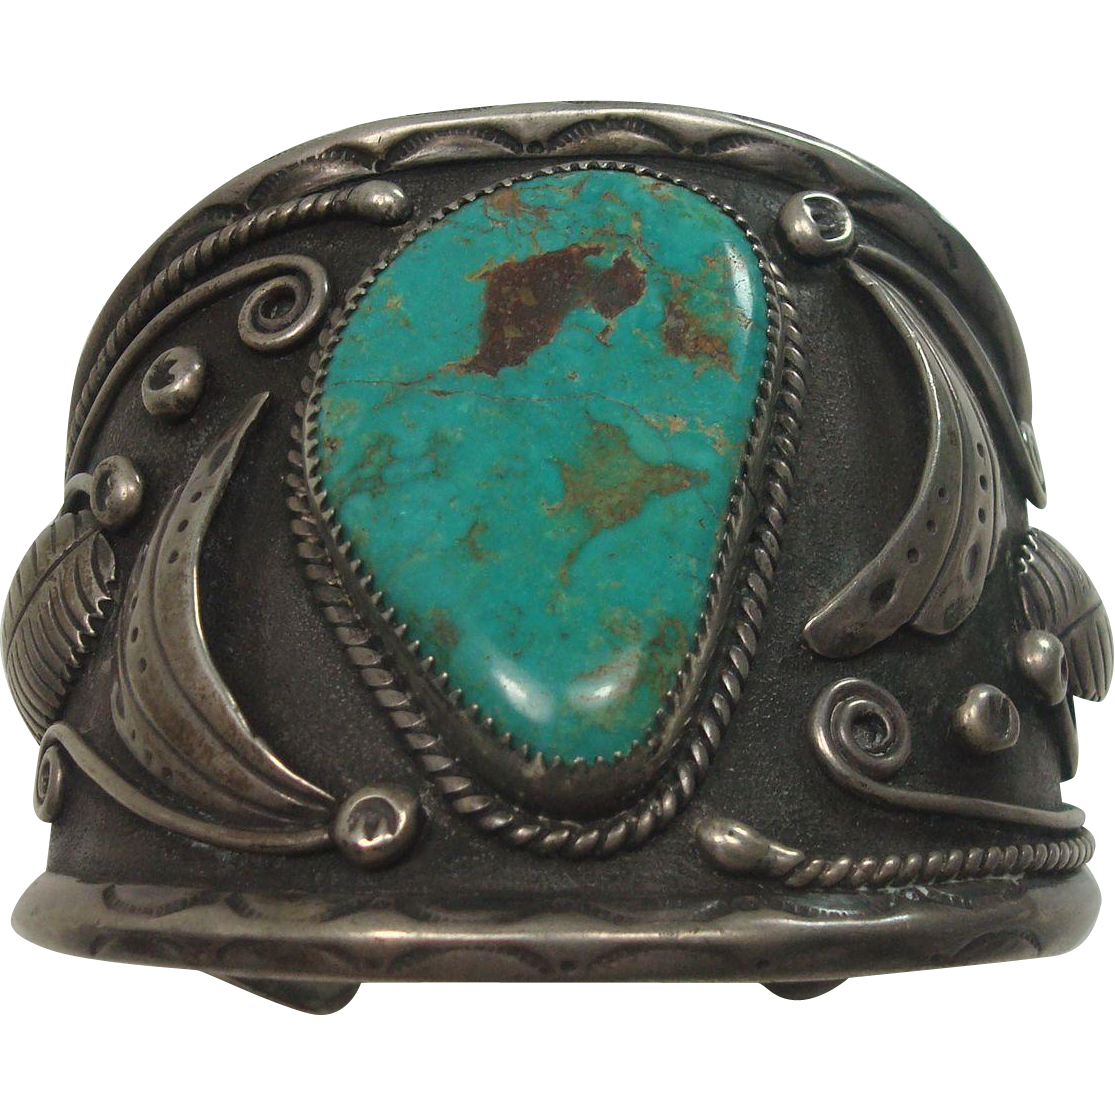 Signed lorenzo livingston turquoise and sterling cuff bracelet